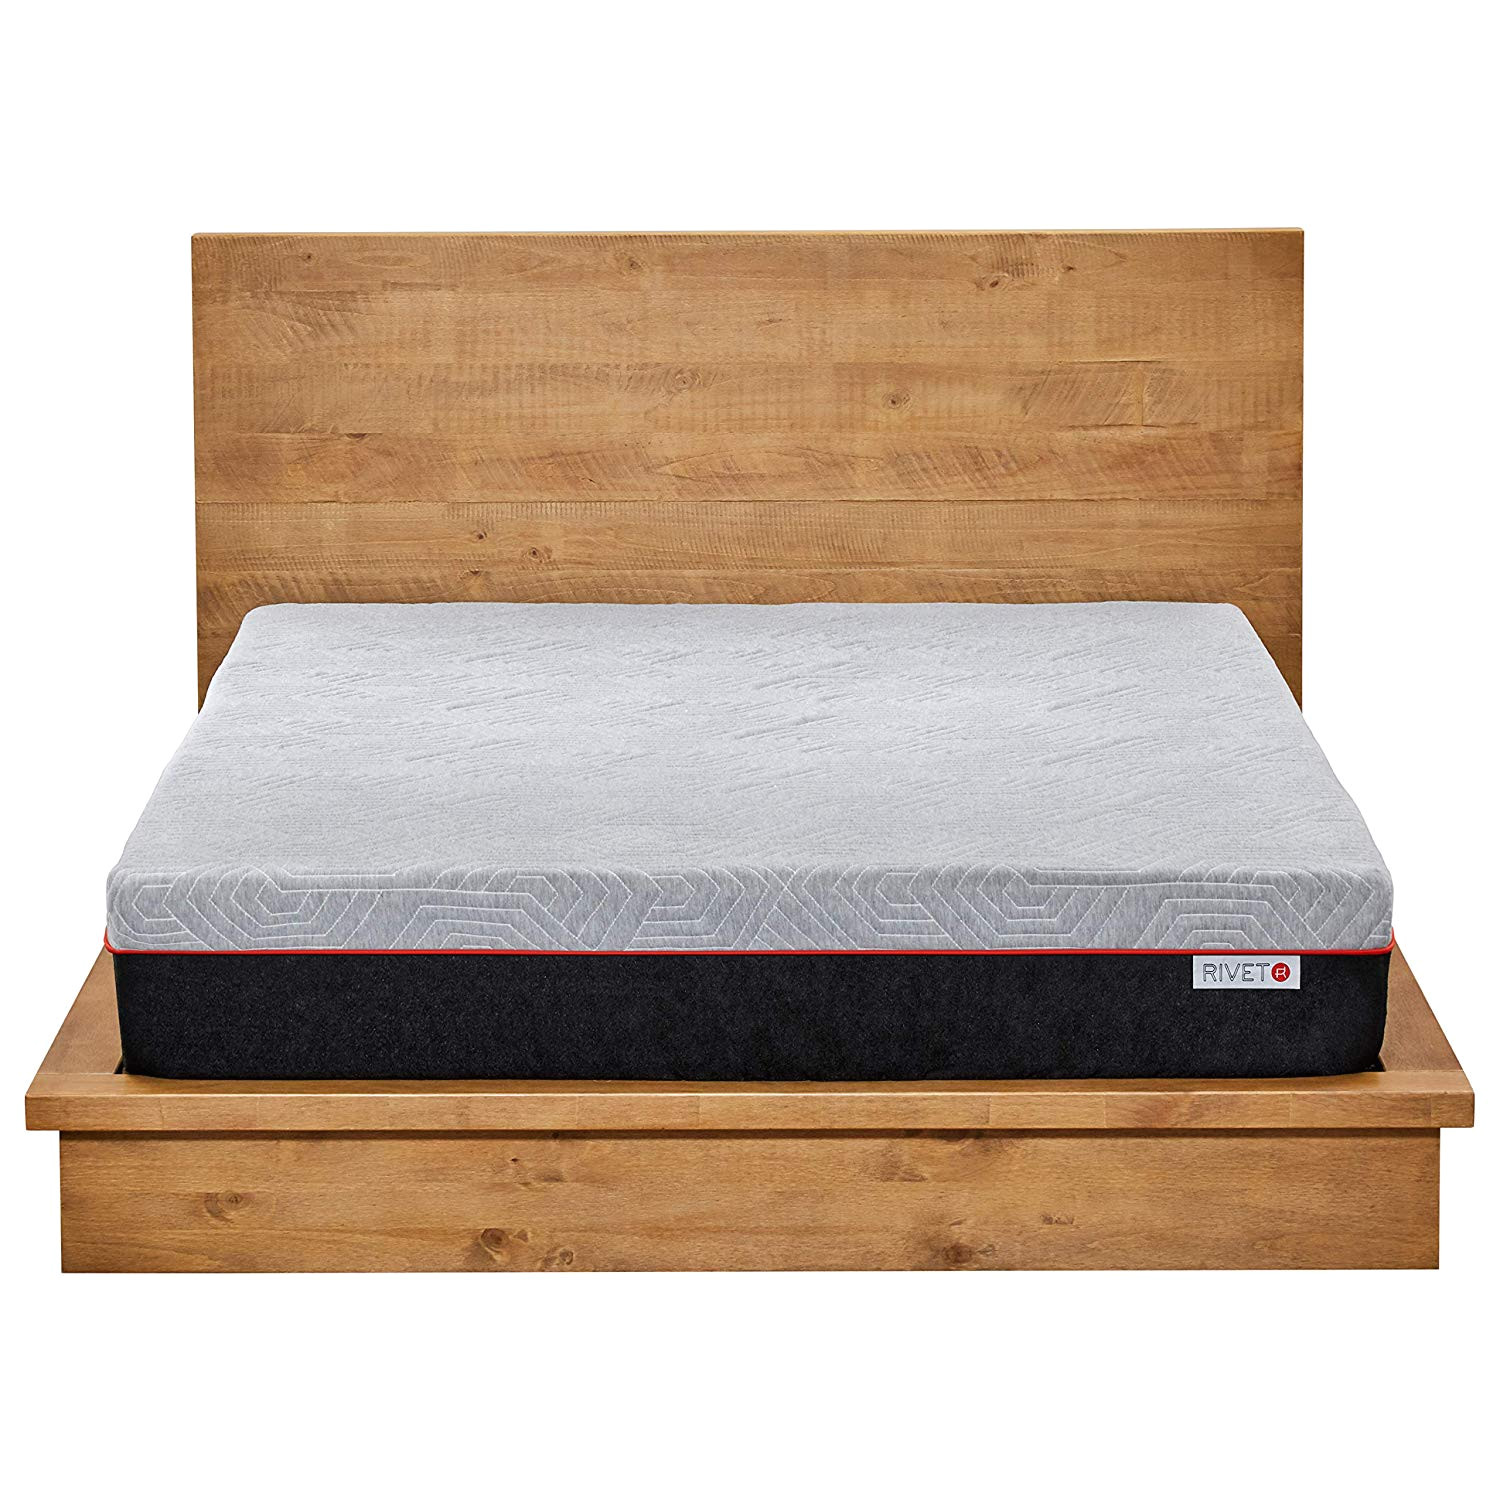 amazon com rivet full mattress celliant cover responsive 3 layer memory foam for support and better overnight recovery bed in a box 100 night trial